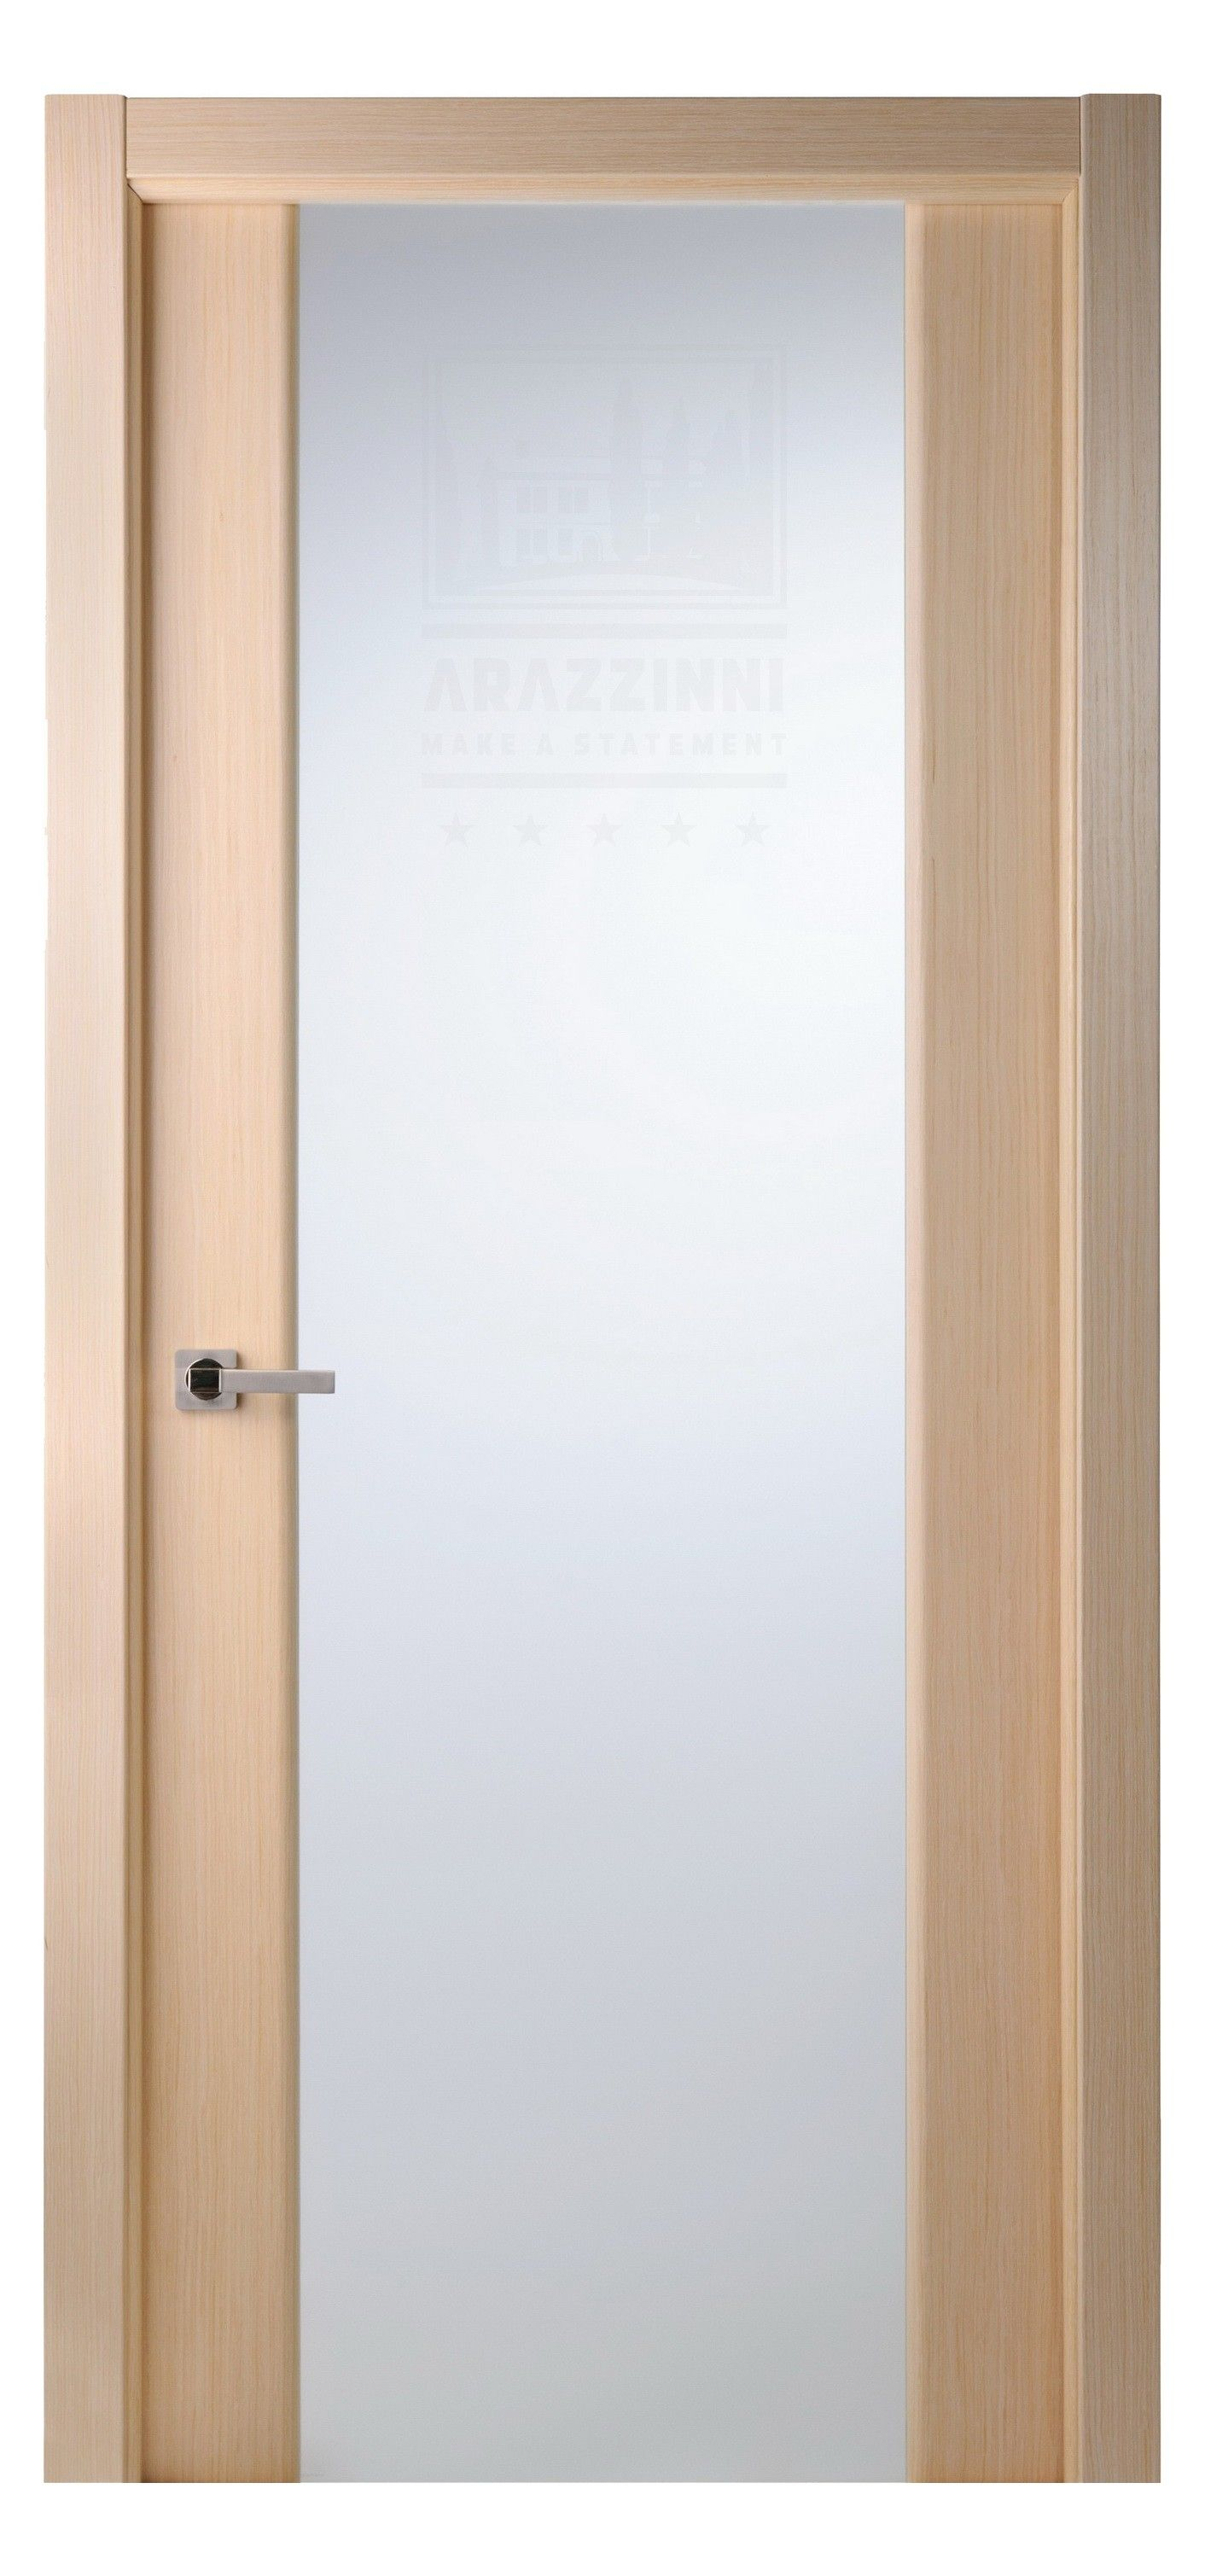 Marvelous Instead Of Going For A More Traditional Looking Door, Change The Color And  Style Of Part Or All Of Your Home By Going With A Grand 202 Interior Door.